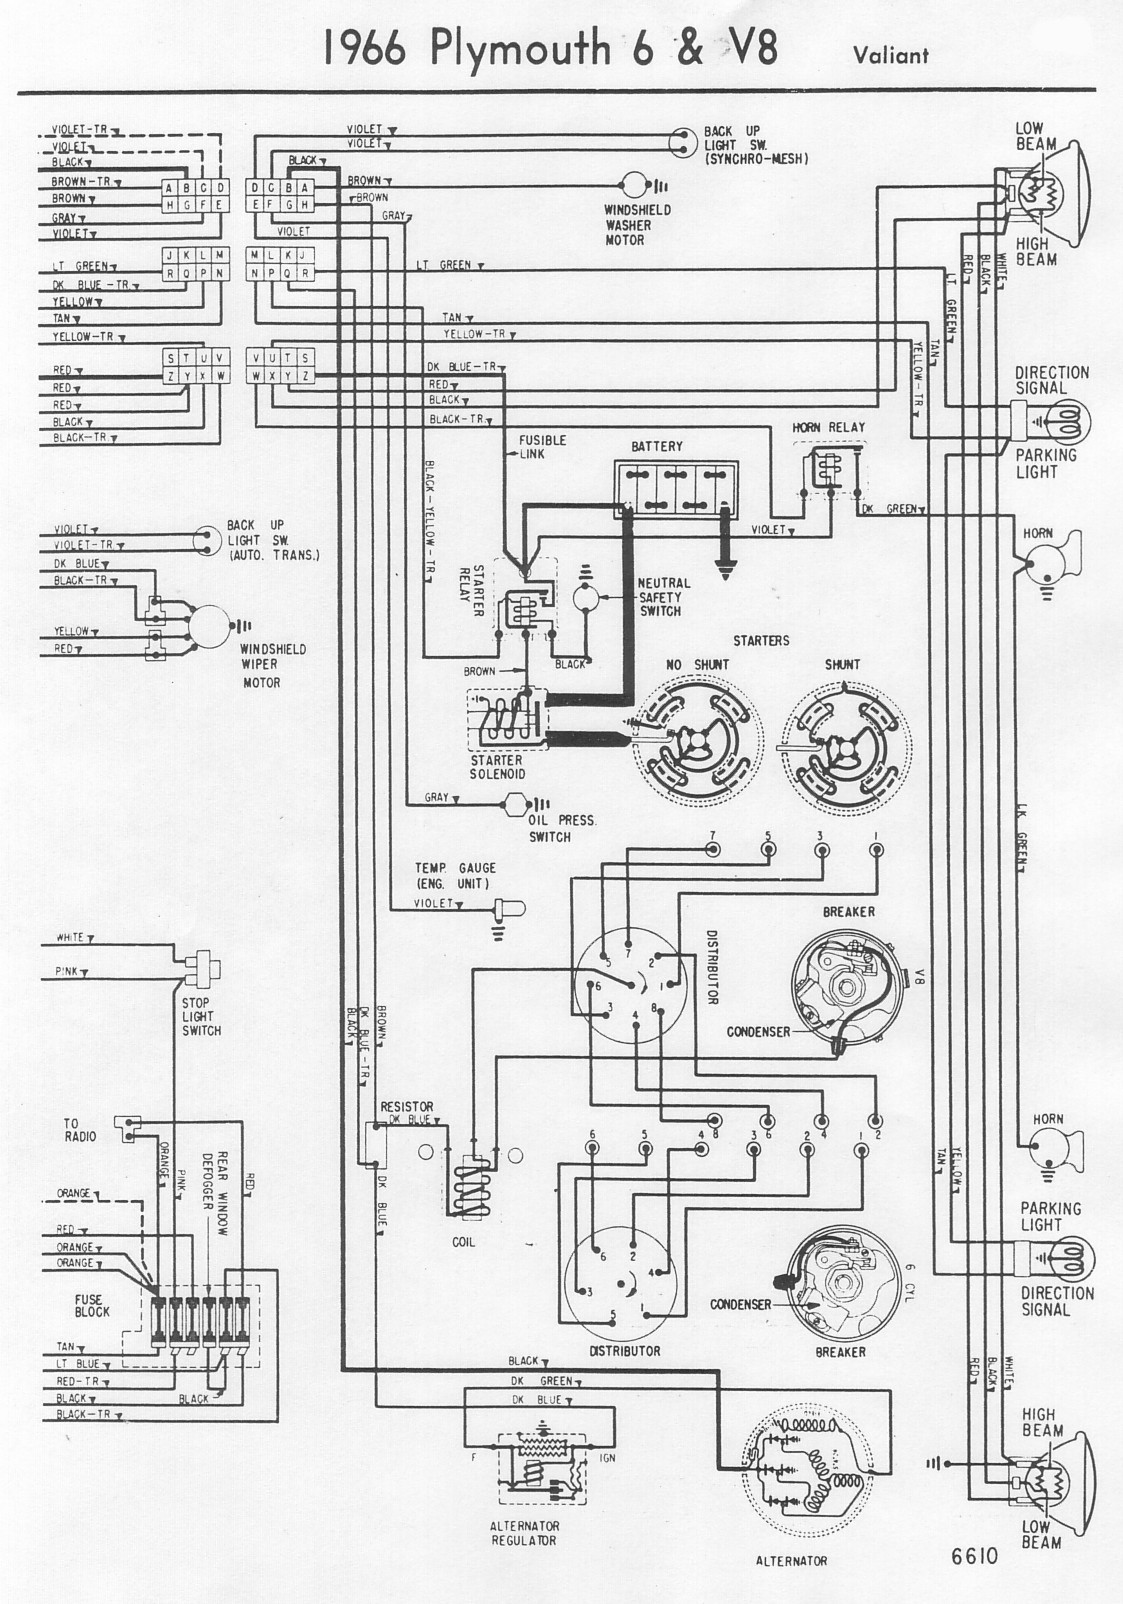 Chevrolet Impala Wiring Diagram Free Picture